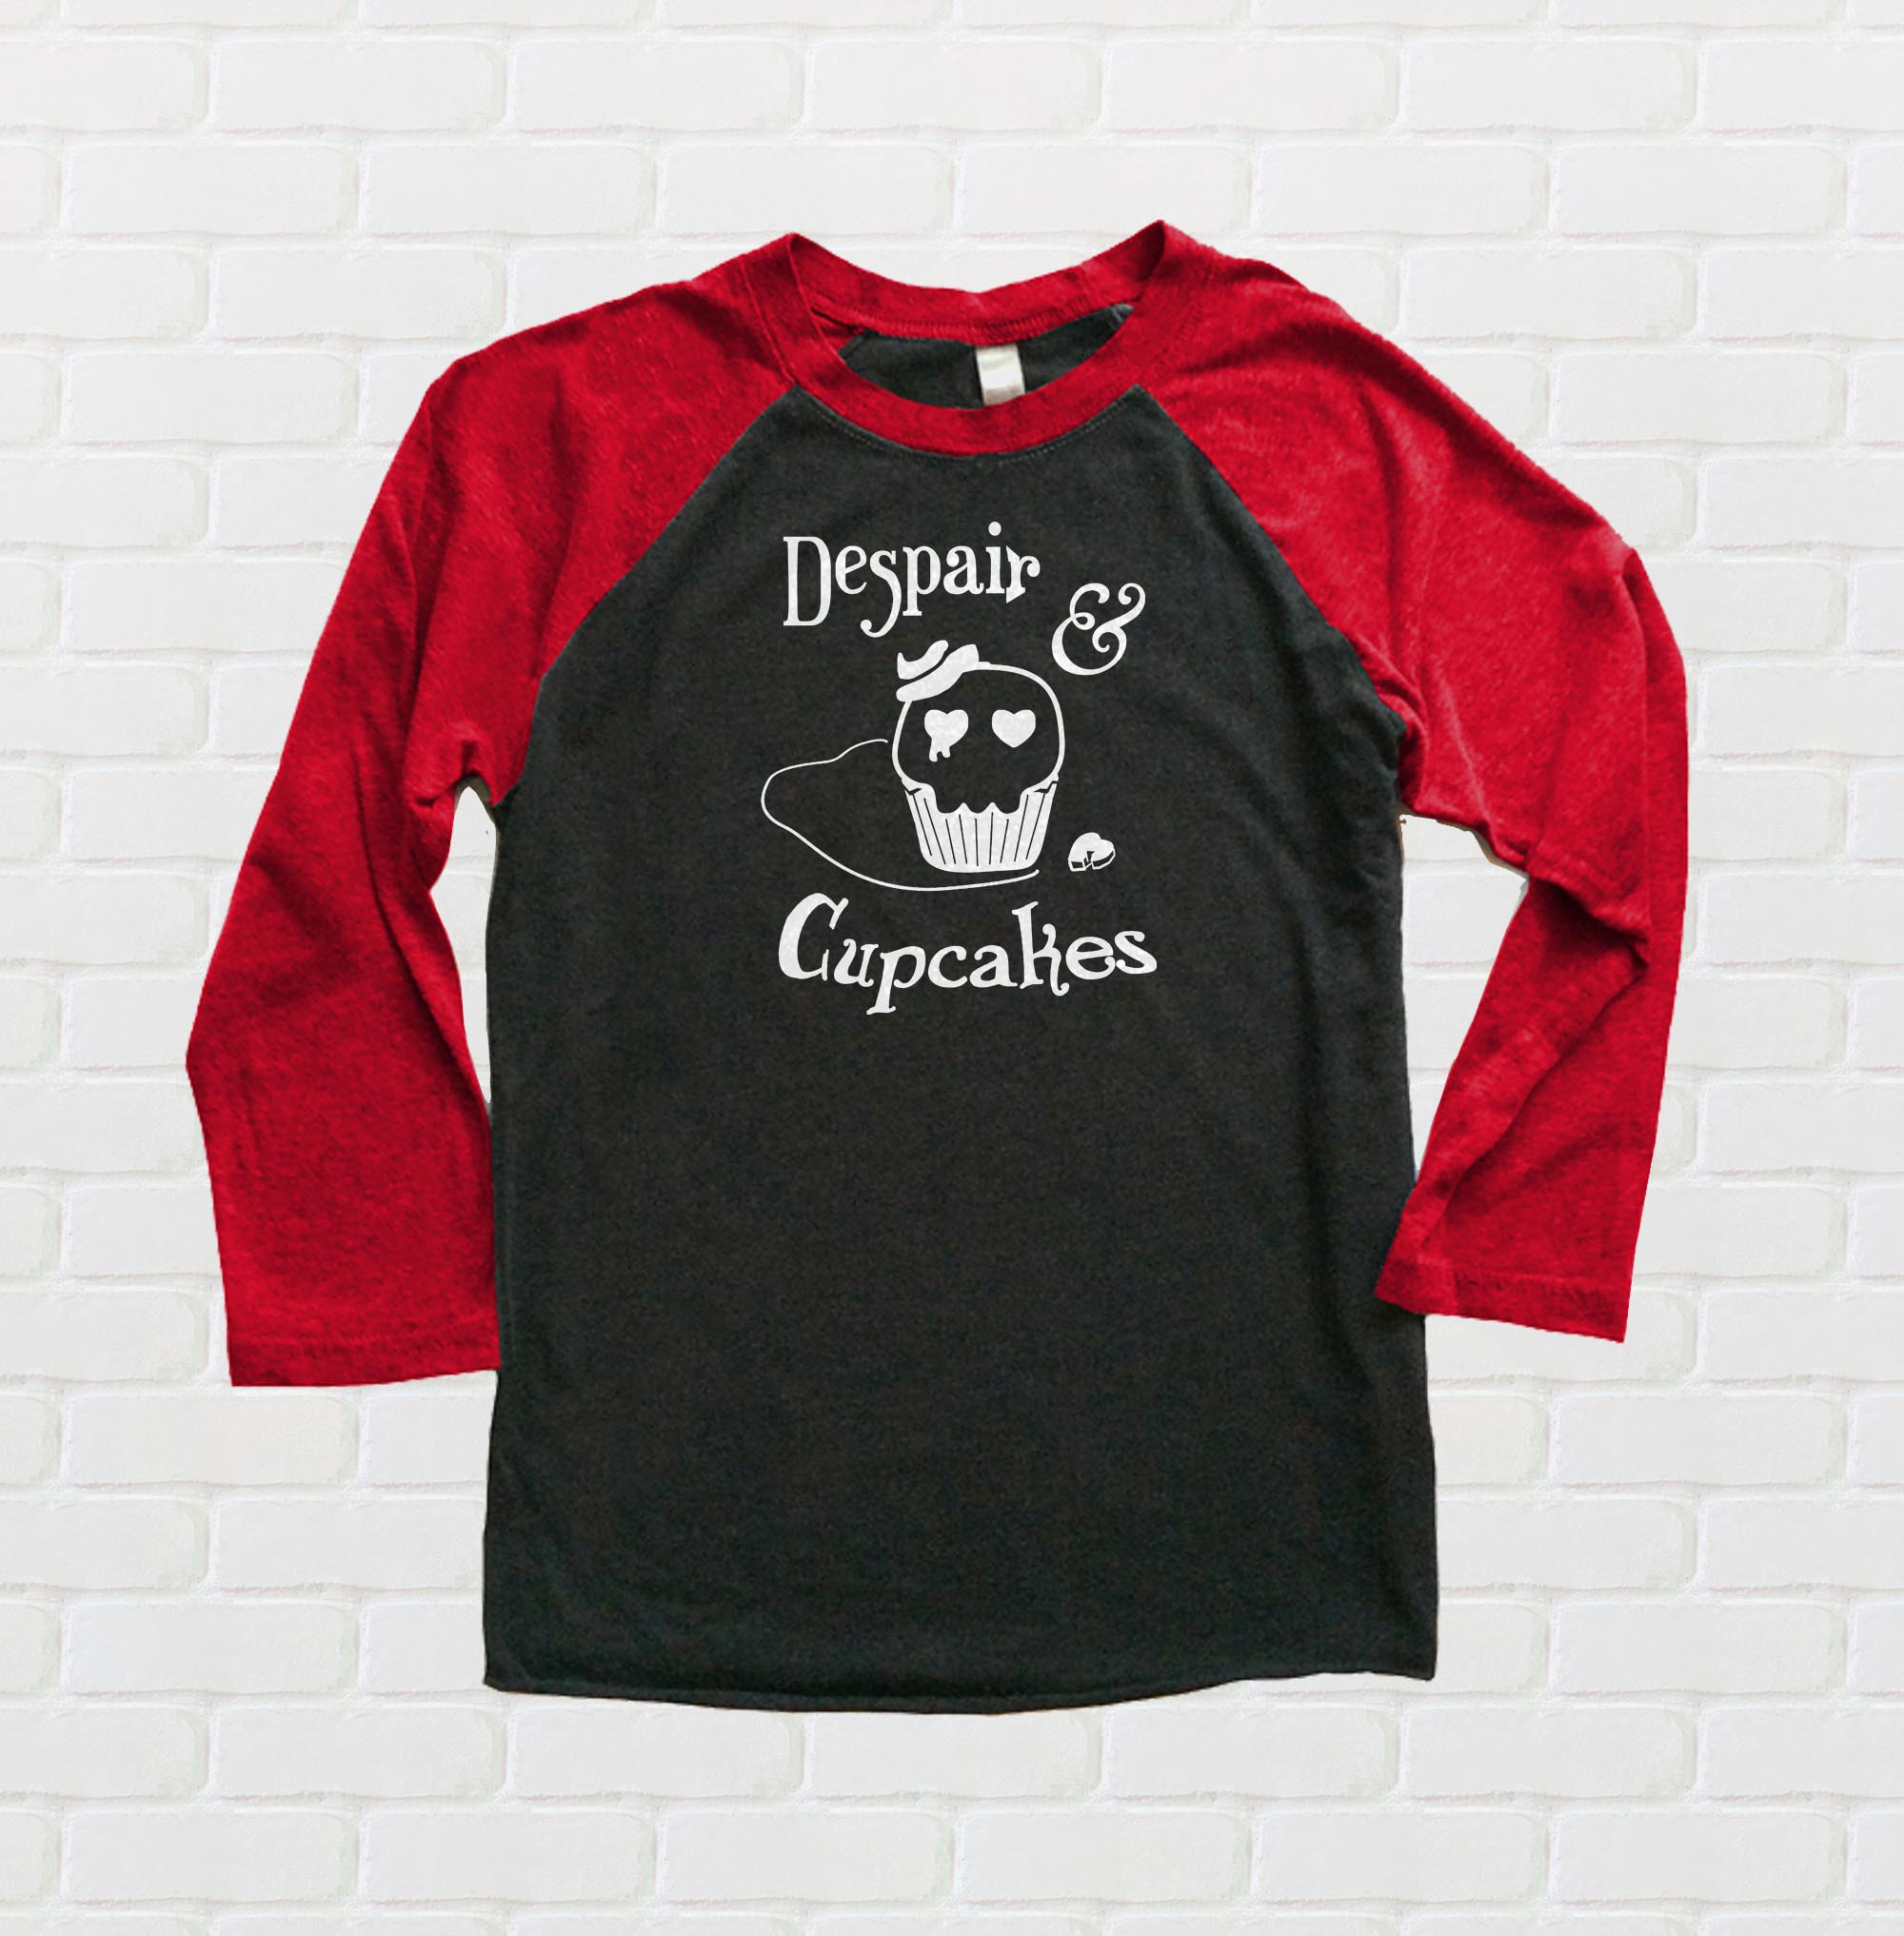 Despair and Cupcakes Raglan T-shirt 3/4 Sleeve - Red/Black